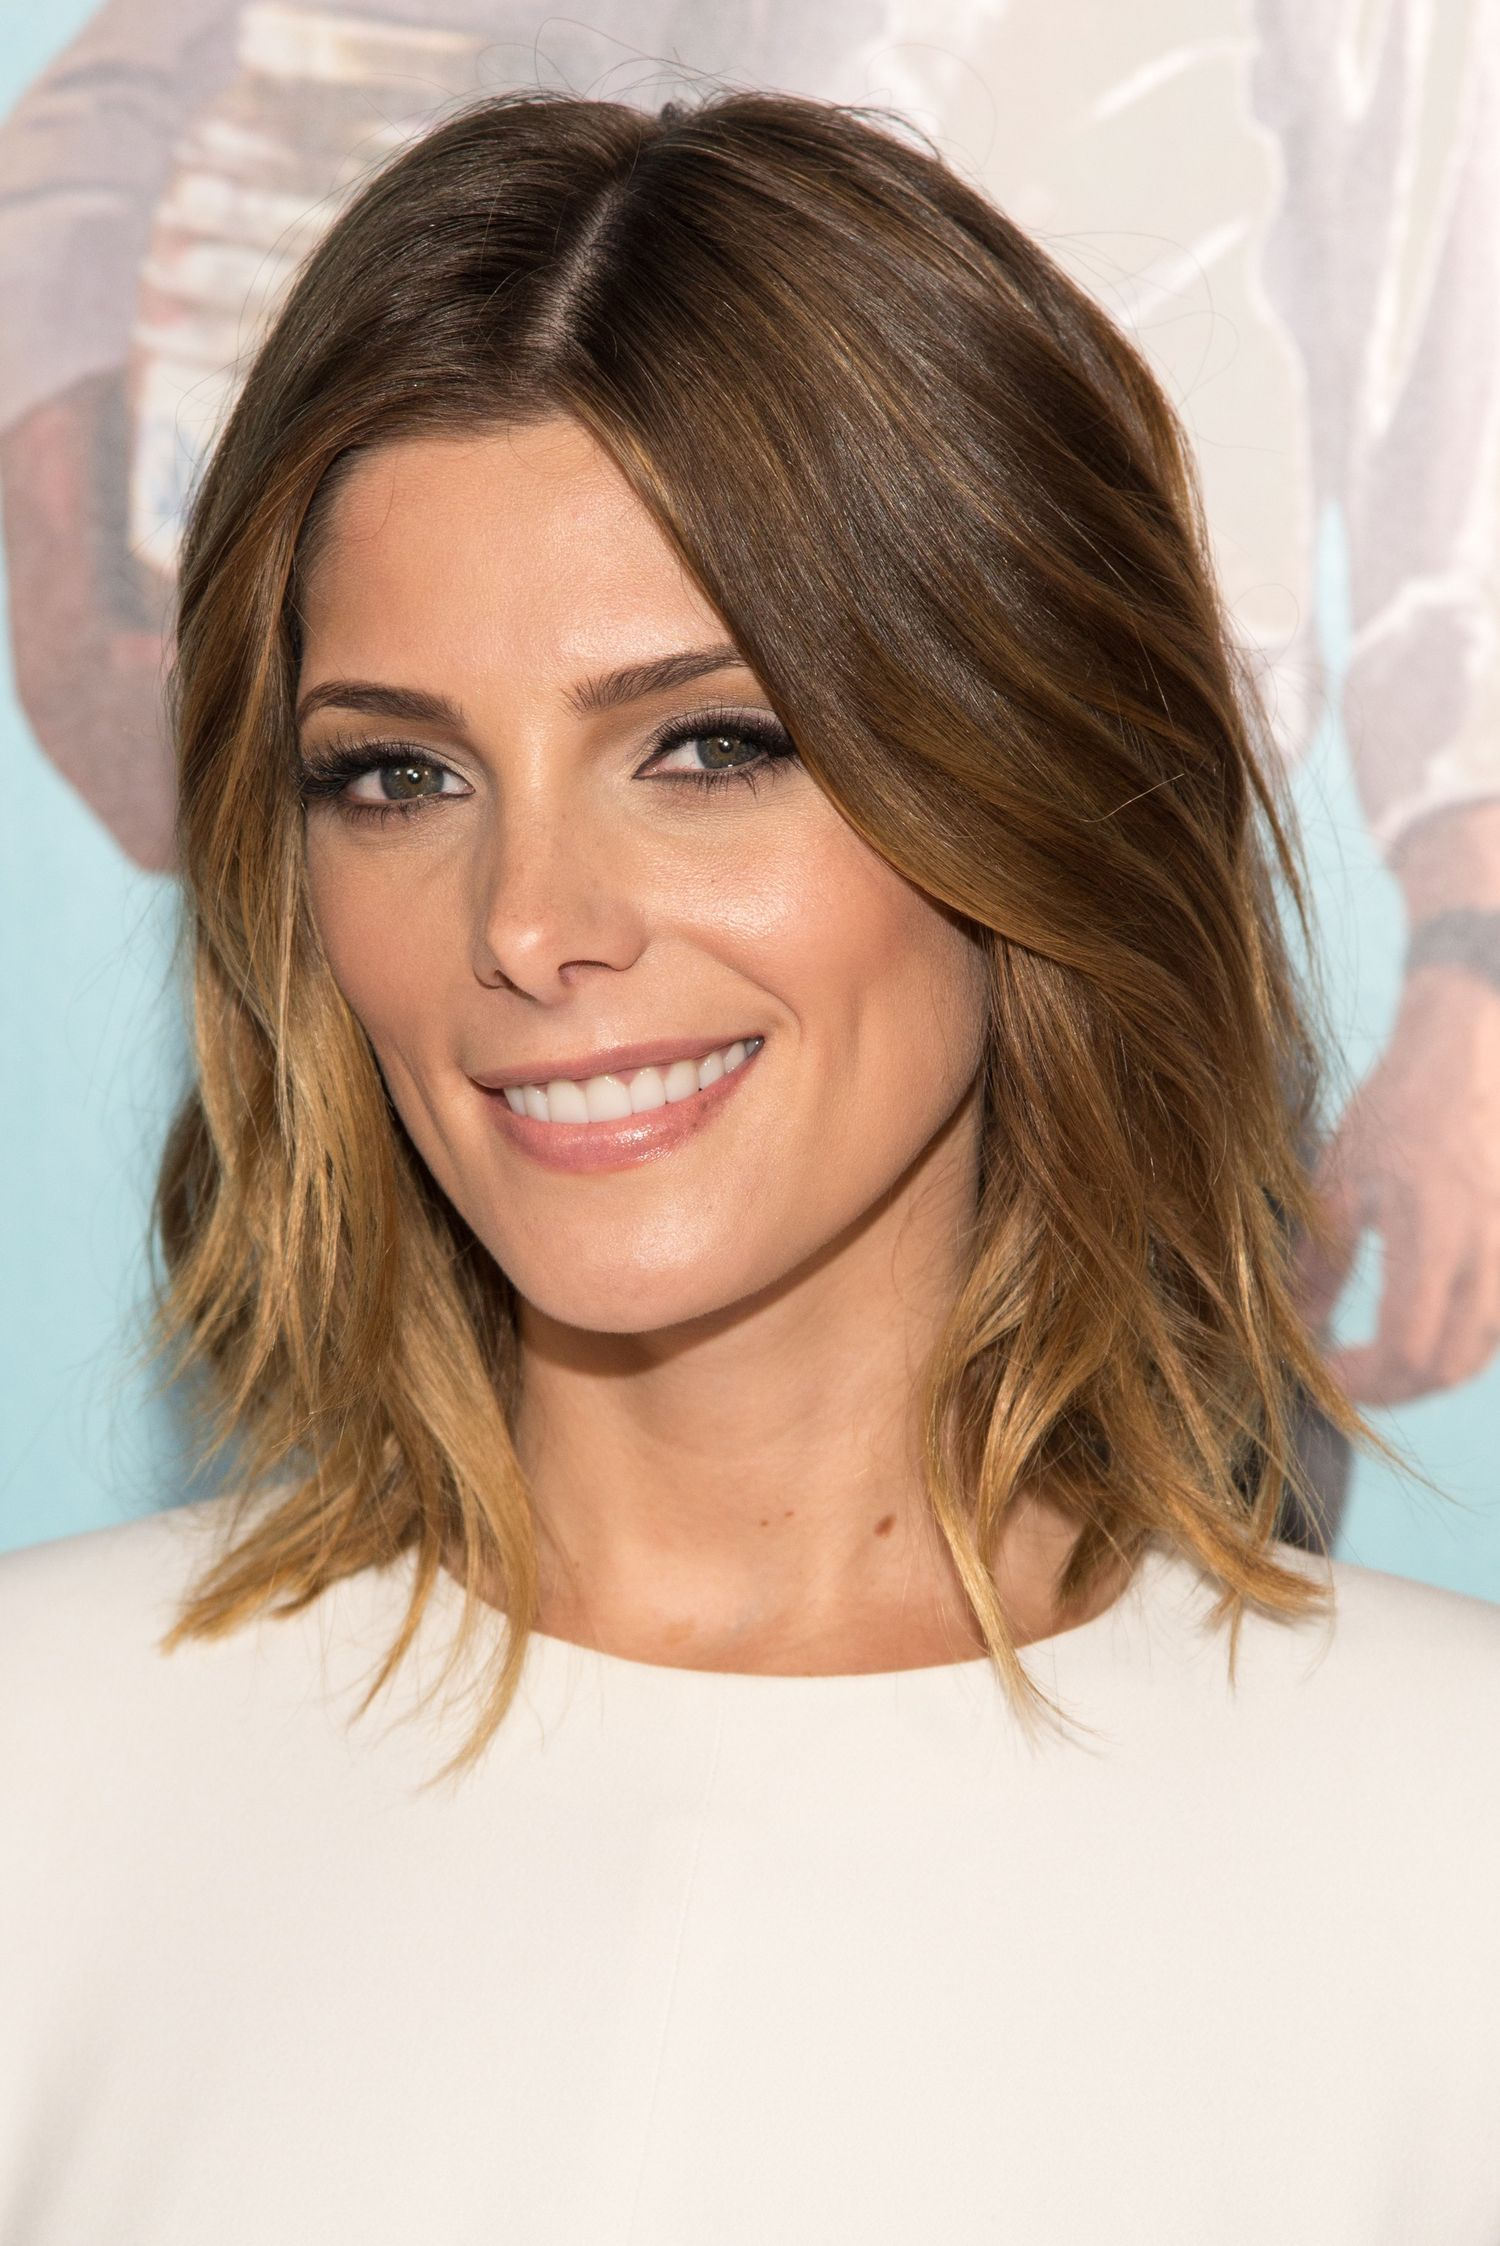 celebrity skin envy ashley greene